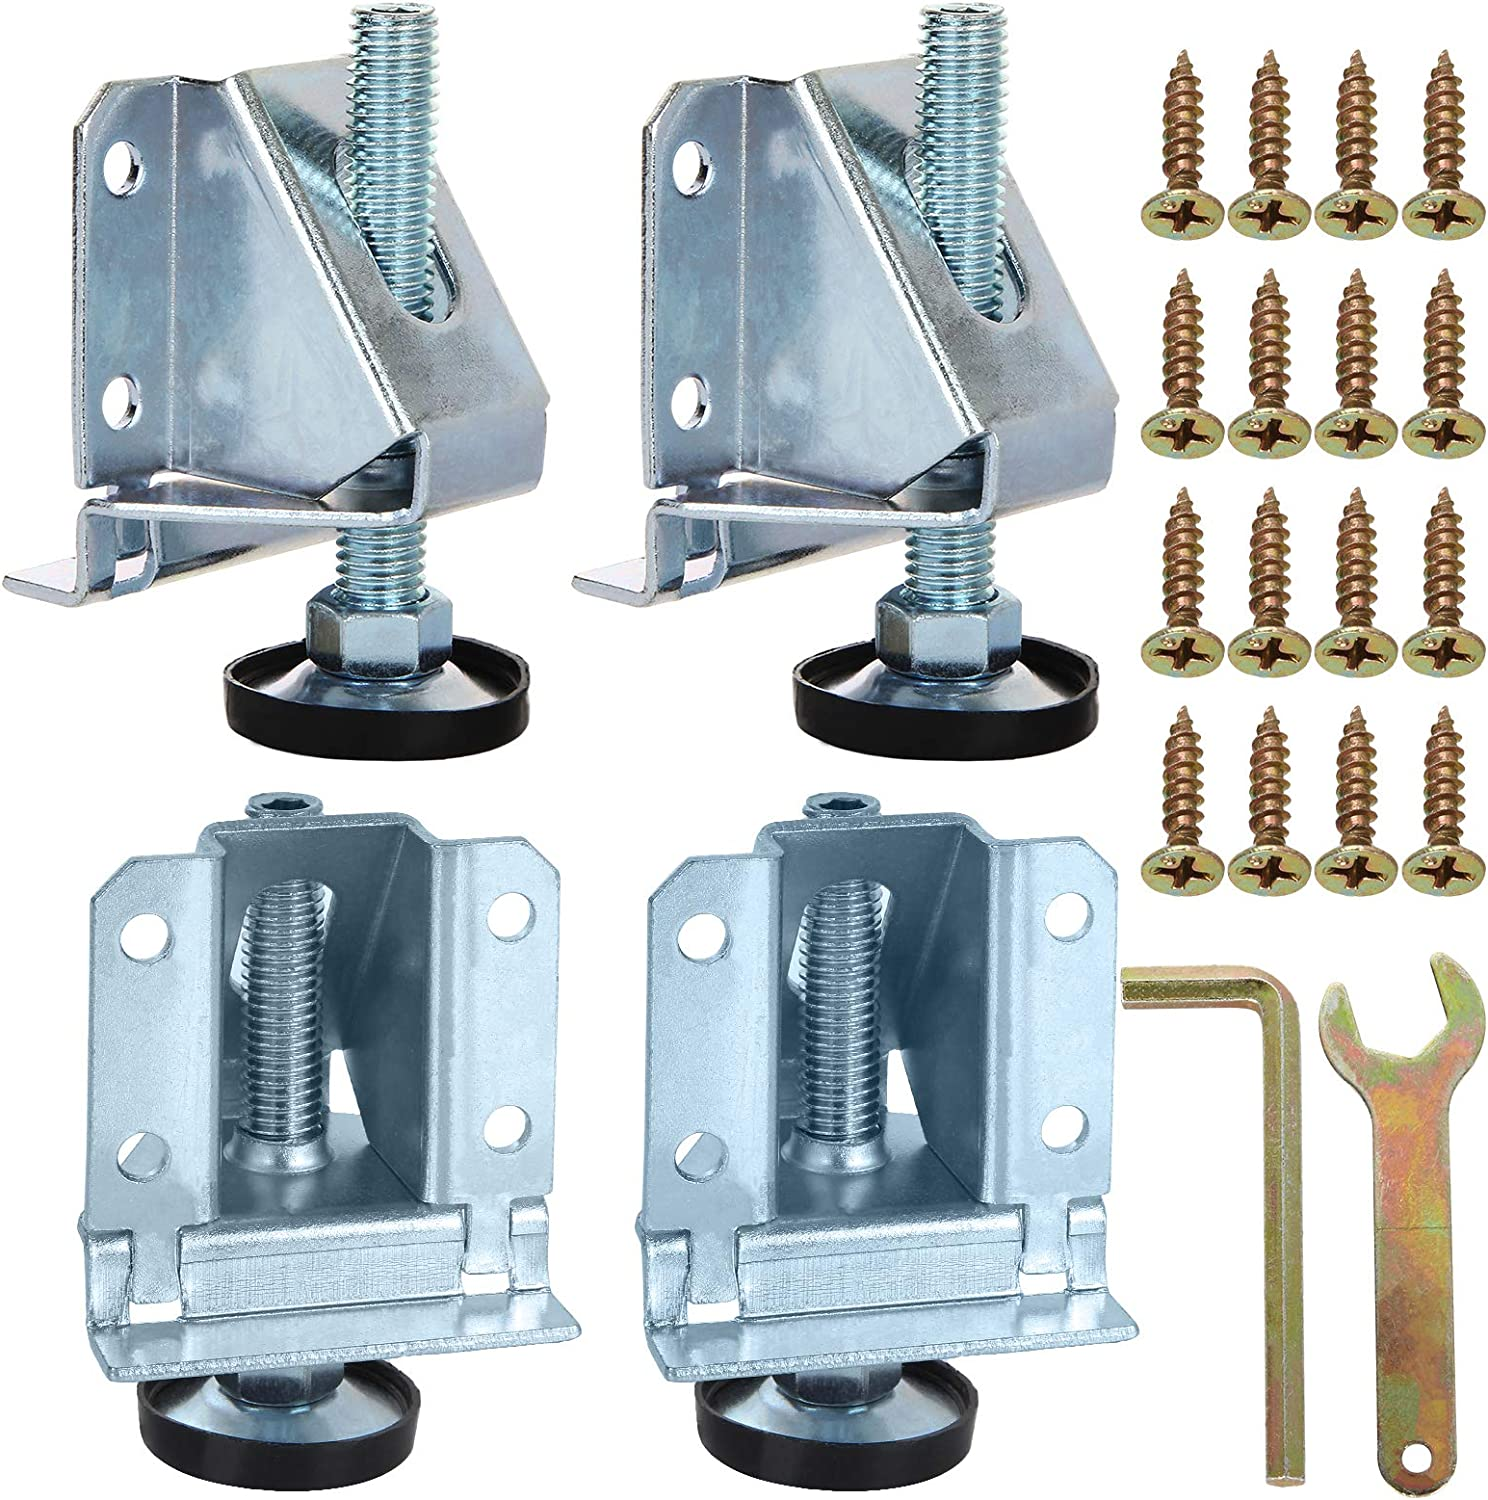 4Pack Leveling Feet Heavy Duty Furniture Levelers Height Adjustable Table Legs Leveler with Hexagon Nuts Lock for Furniture,Table, Cabinets, Workbench,Shelving Units